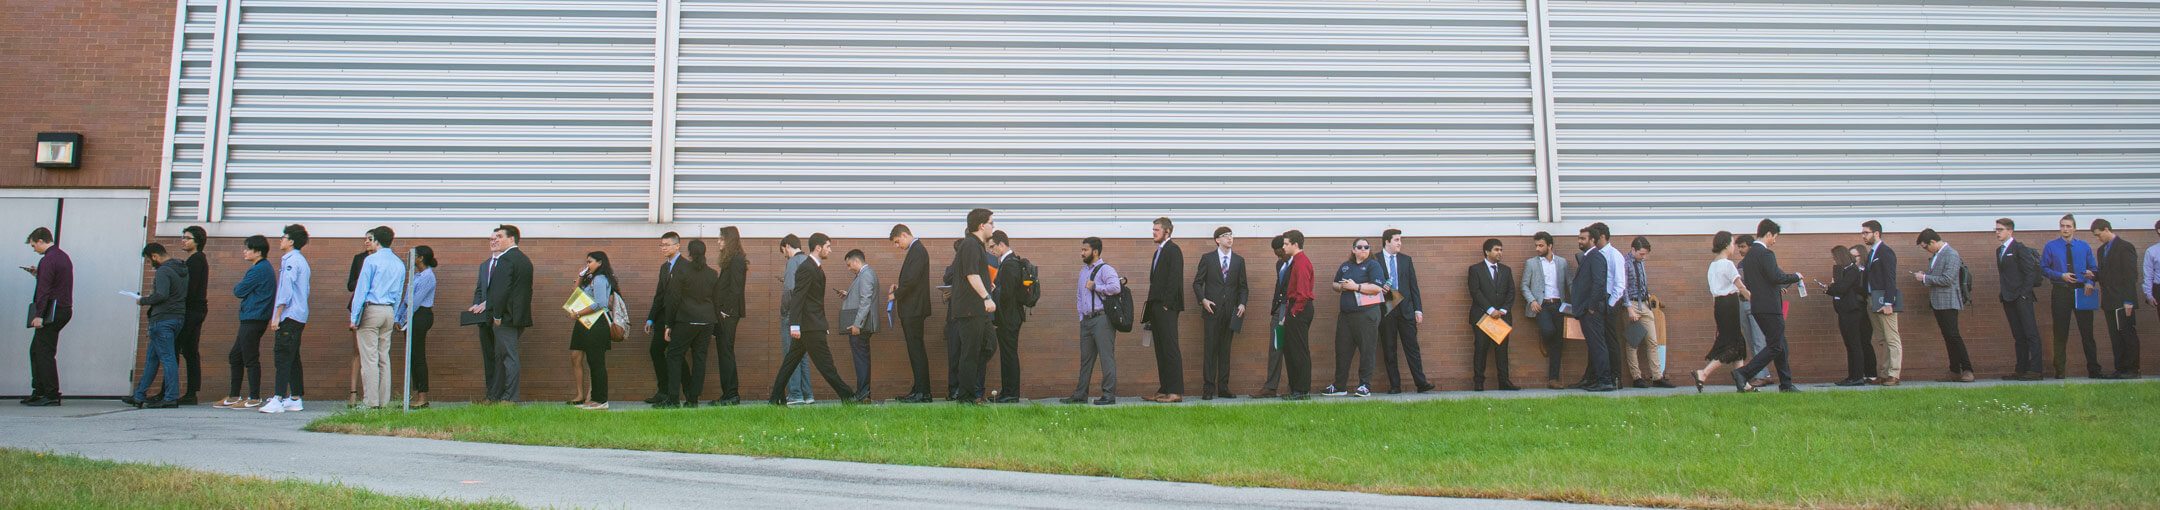 A line of students waiting to enter the Gordon Field House for a career fair.